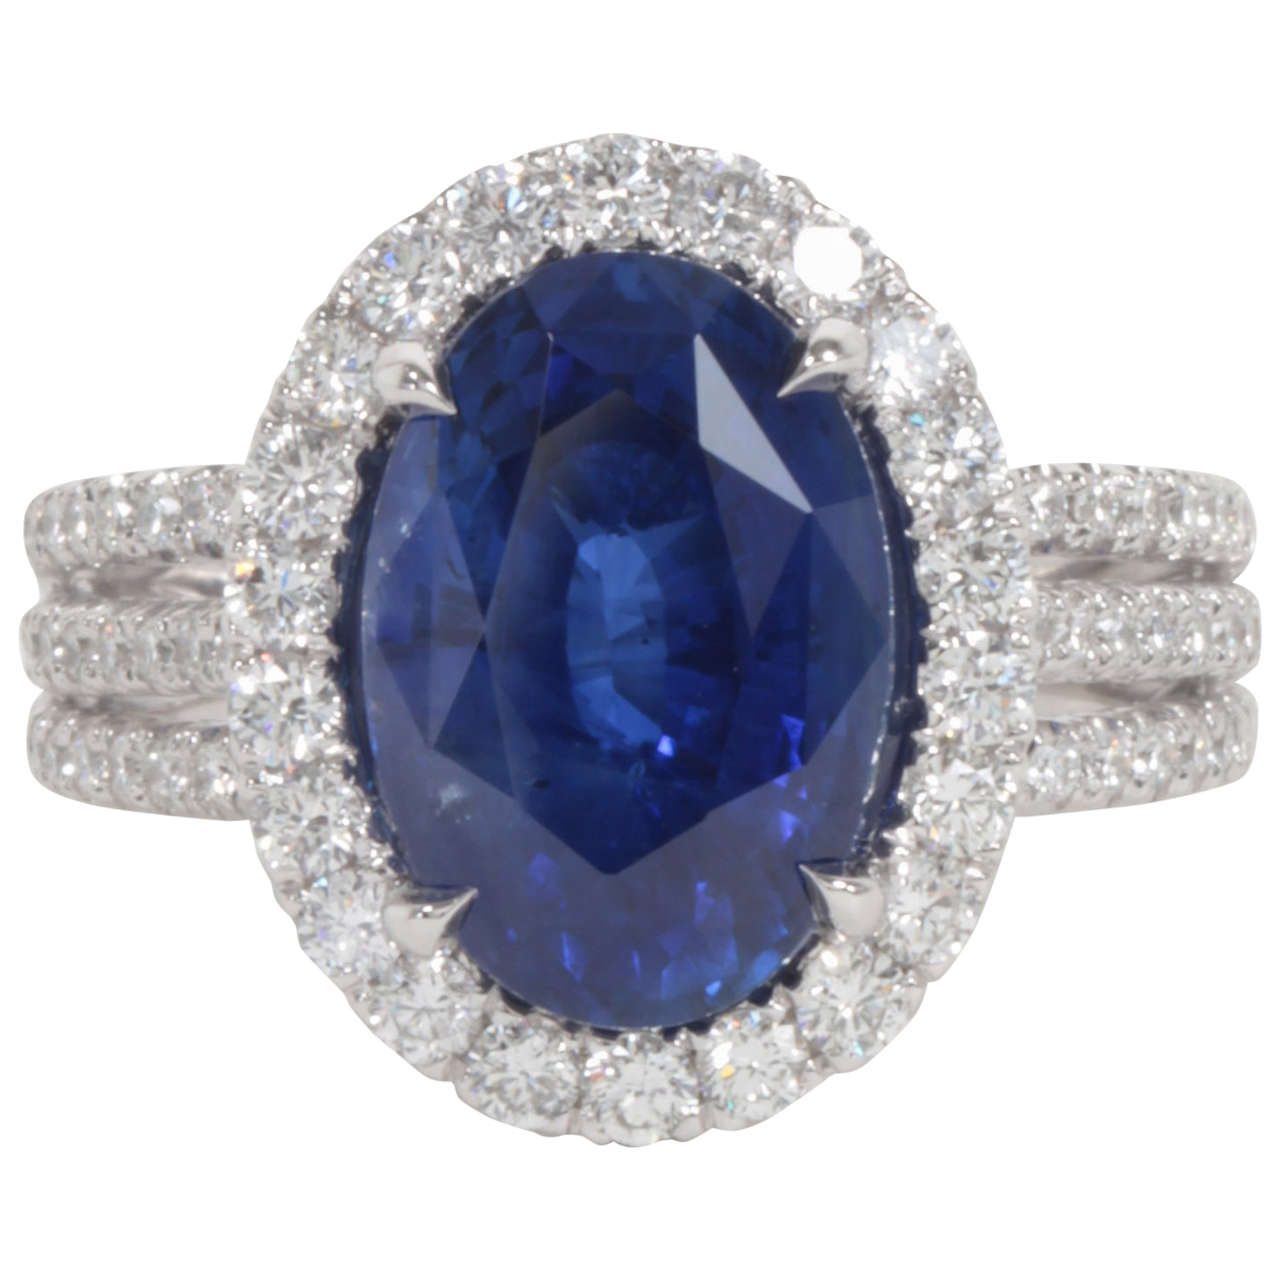 Certified Royal Blue Sapphire Diamond Ring For Sale At 1stdibs. Three Ring Bands. Rare Stone Engagement Rings. Simply Bands. Hinged Bangle Bracelet. Silk Earrings. Pear Diamond Wedding Rings. Pave Diamond Eternity Band. Slide Pendant